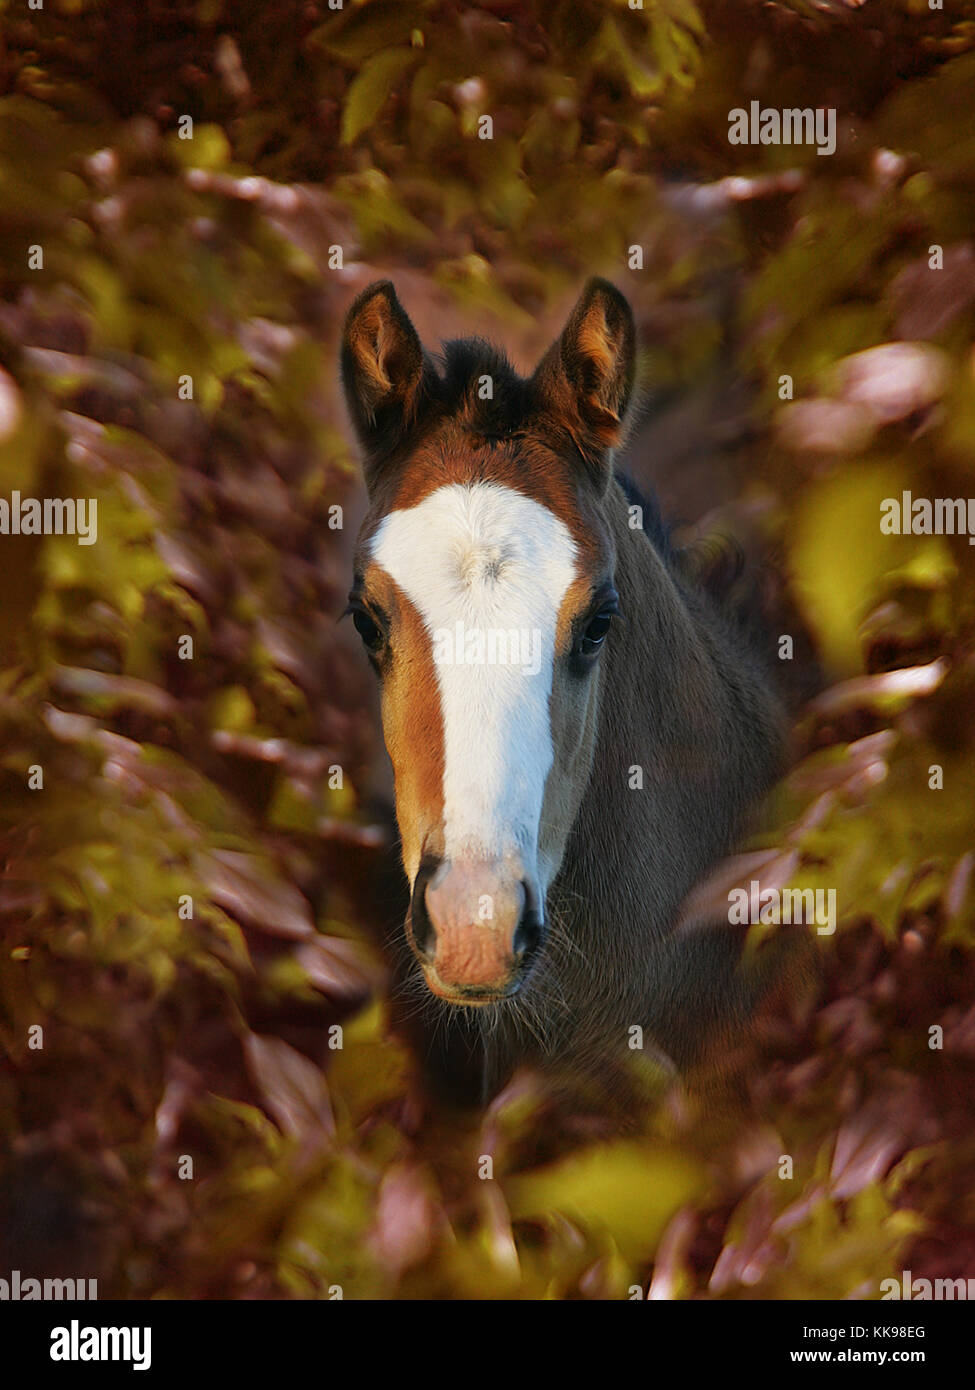 A beautiful shy foal peeps through a collar of autumnal leaves. - Stock Image